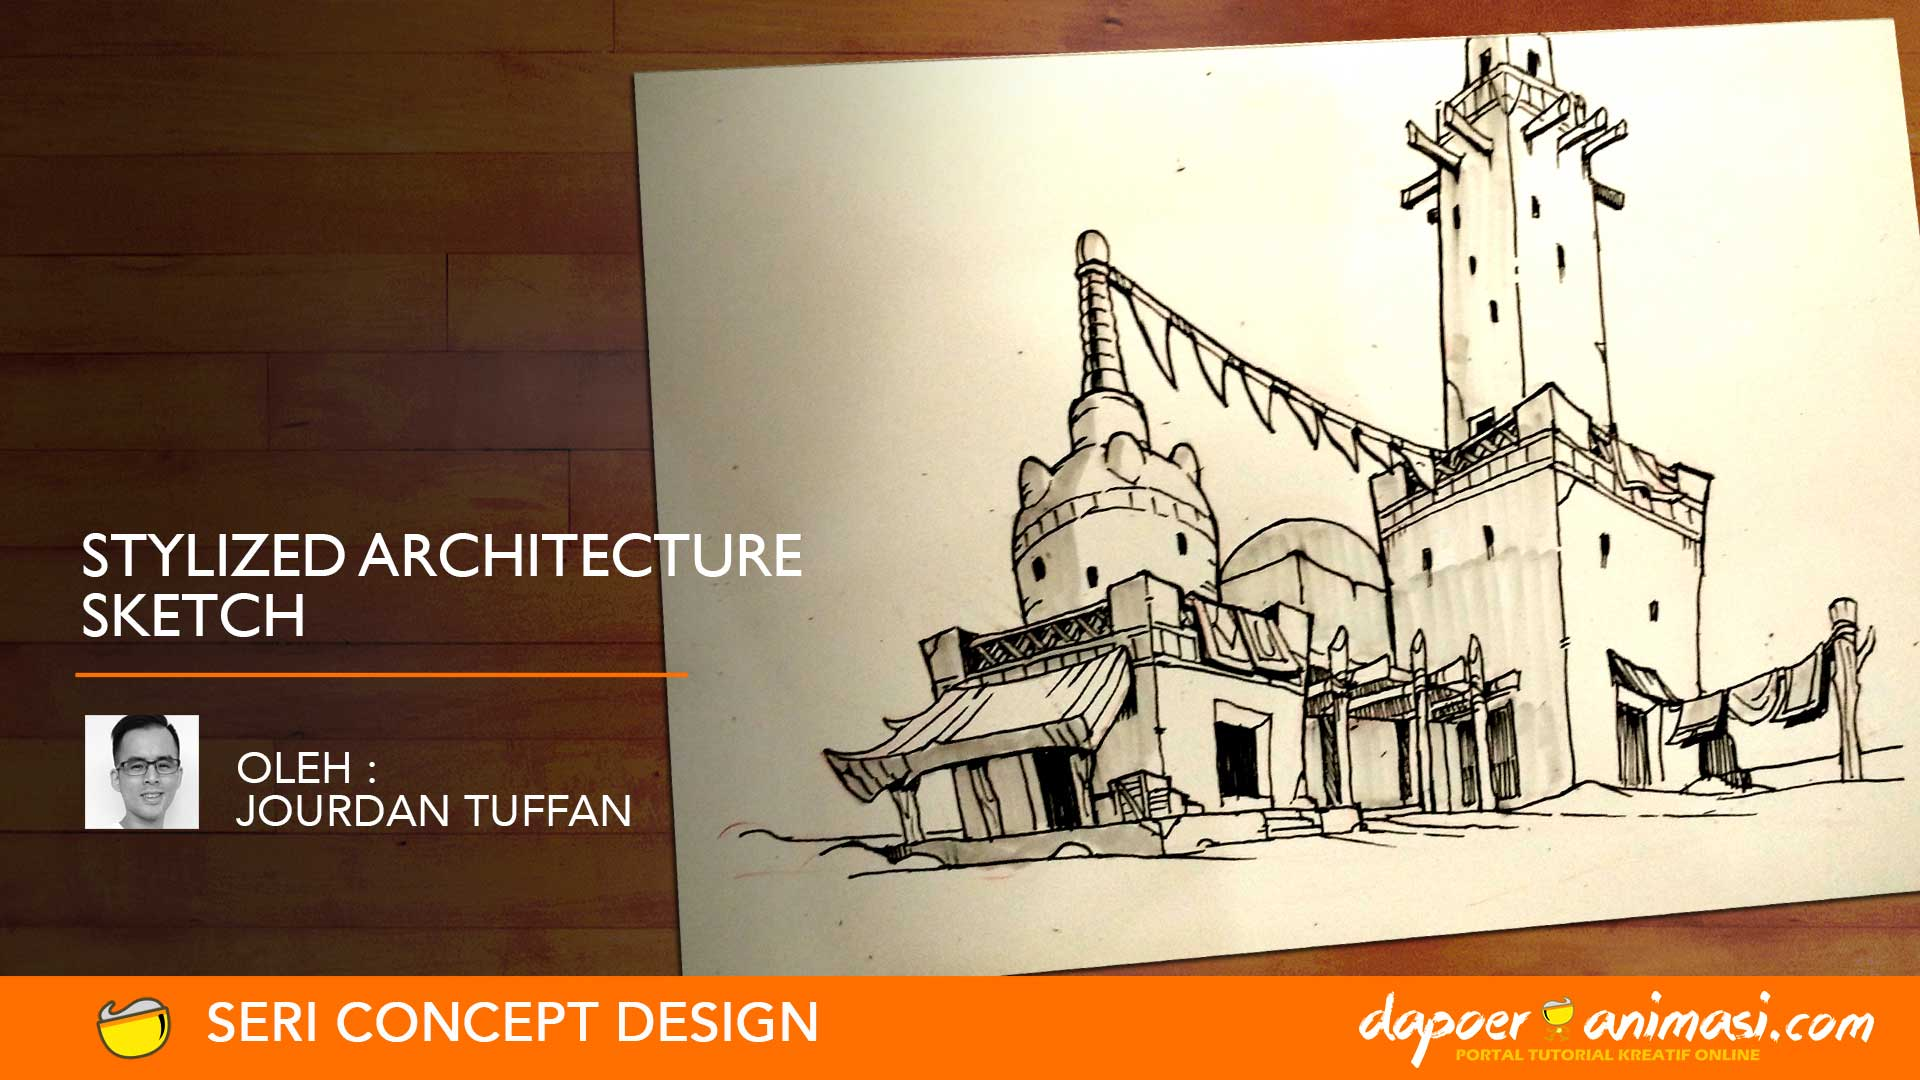 Dapoer Animasi  : Stylized Architecture Sketch